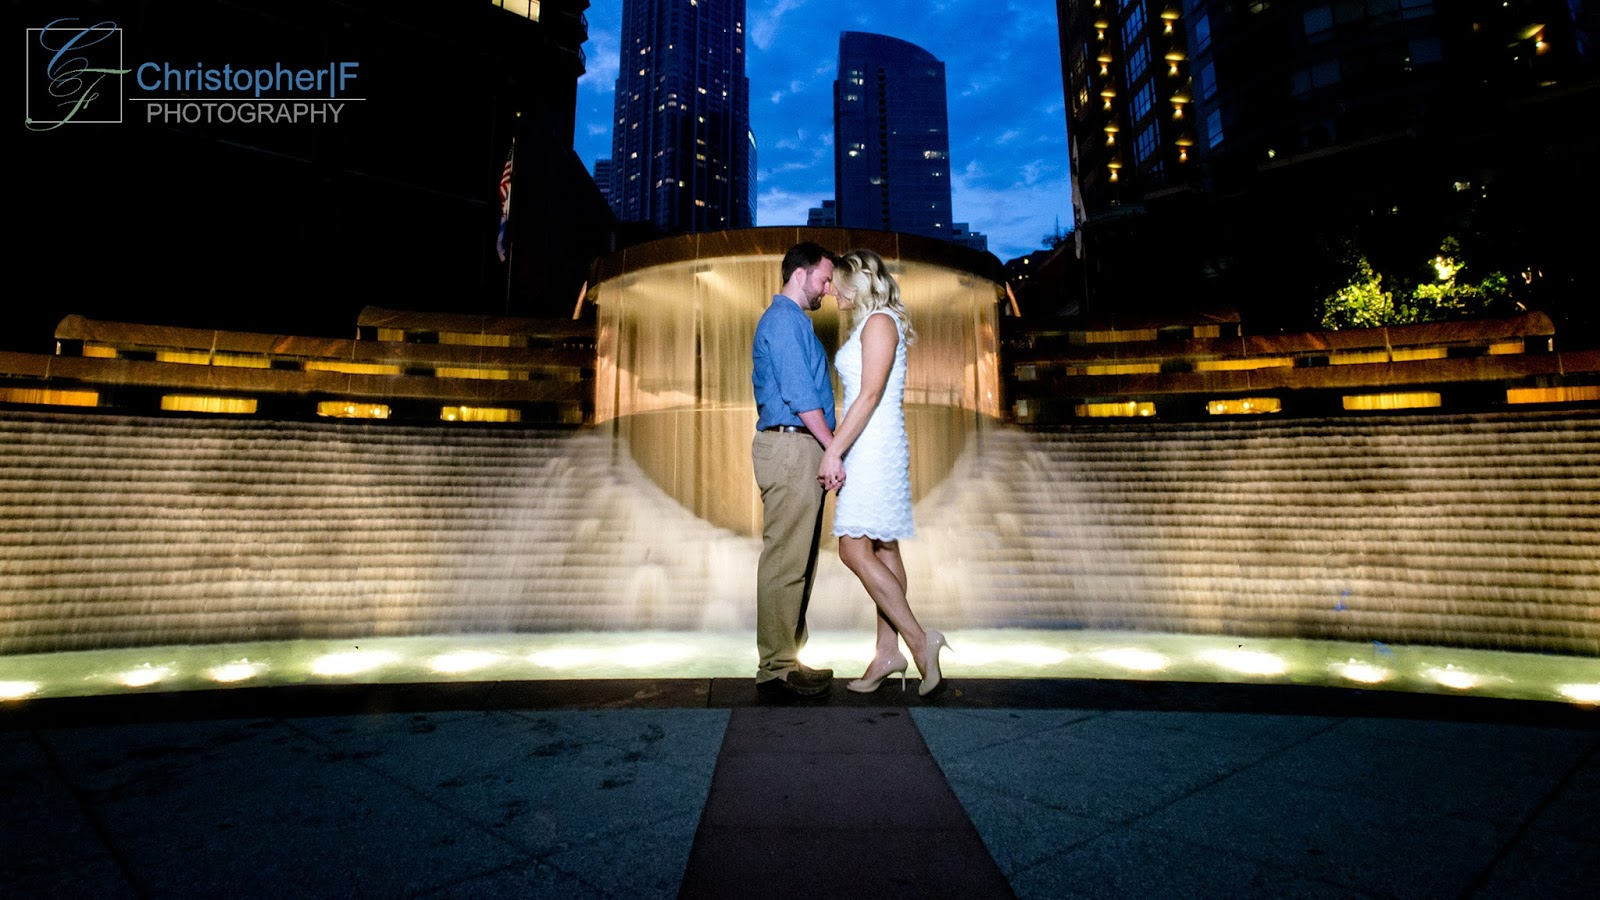 Chicago Night Fountain Engagement Photo